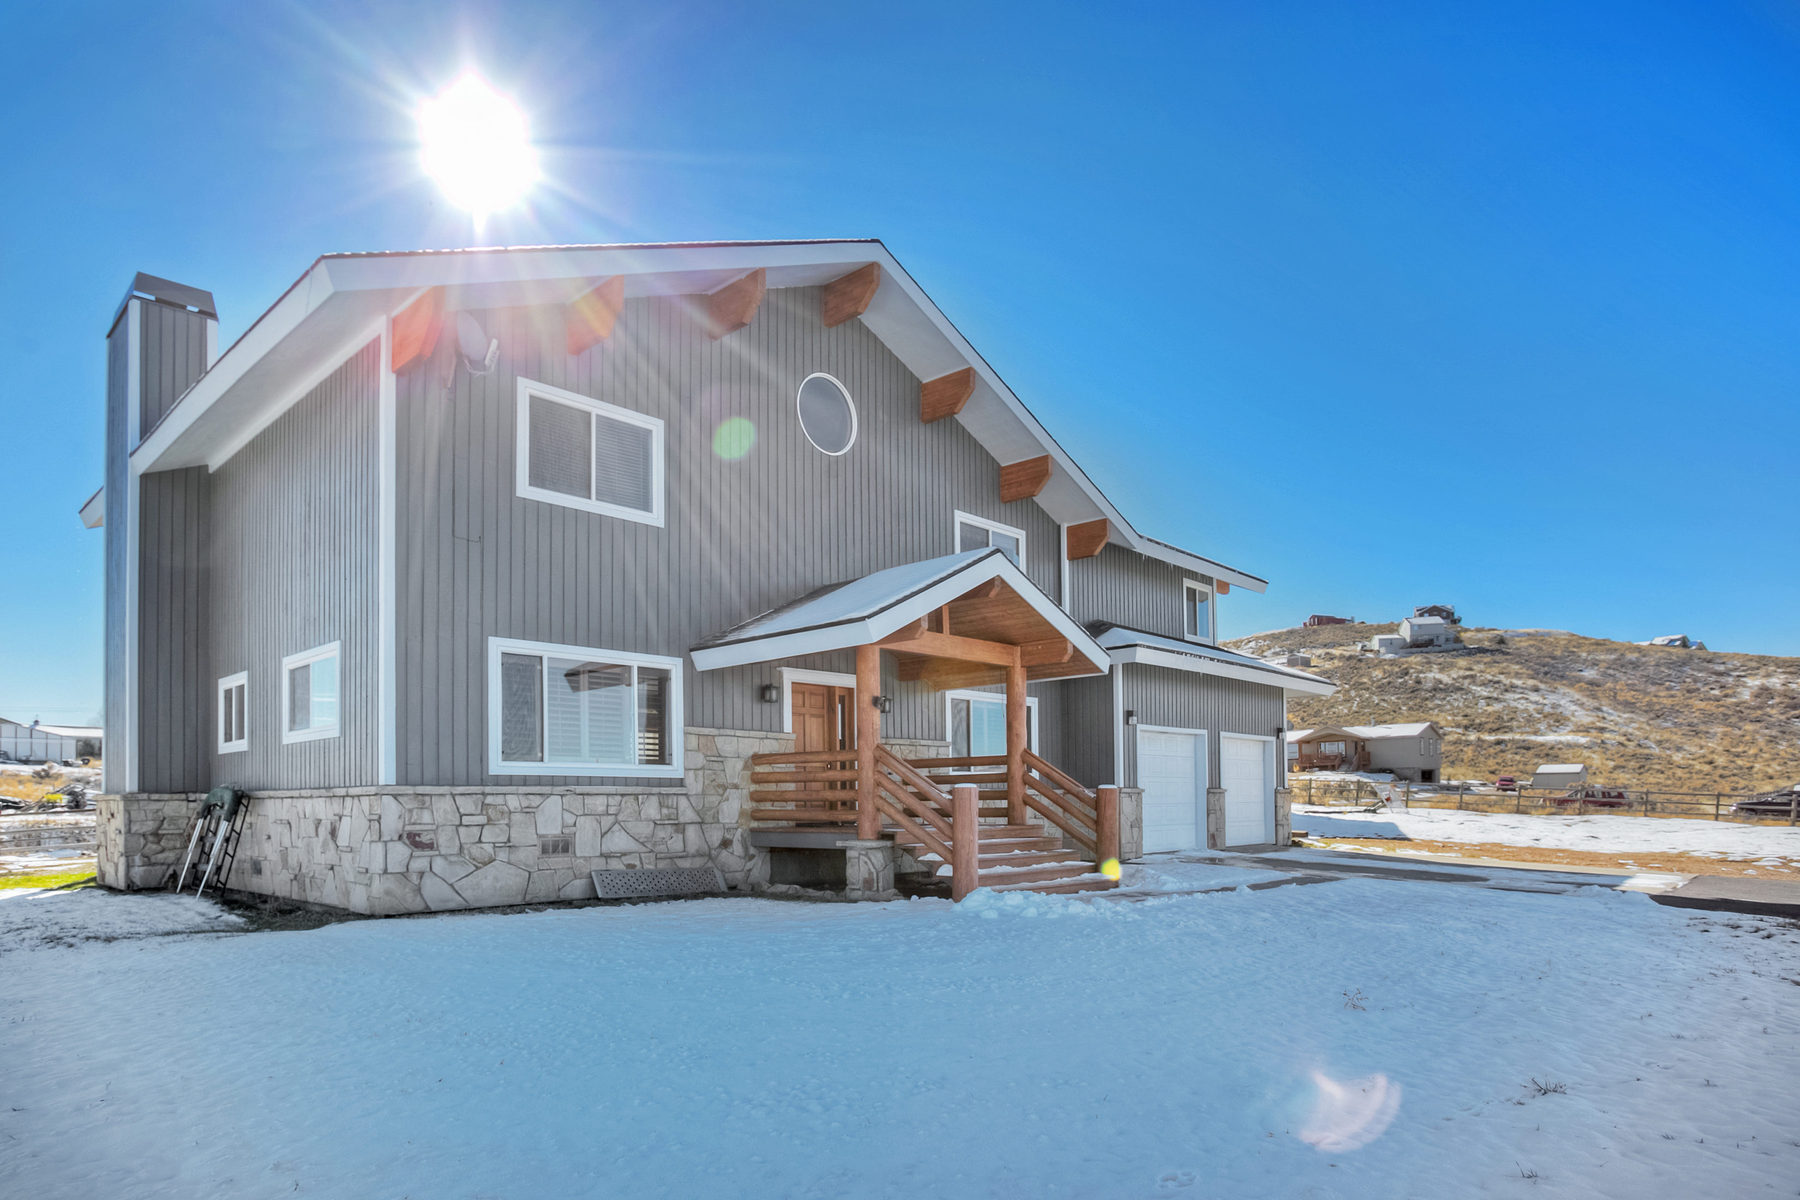 独户住宅 为 销售 在 Great Horse Property with a Barn and Stalls 6517 Highland Dr Park City, 犹他州 84098 美国